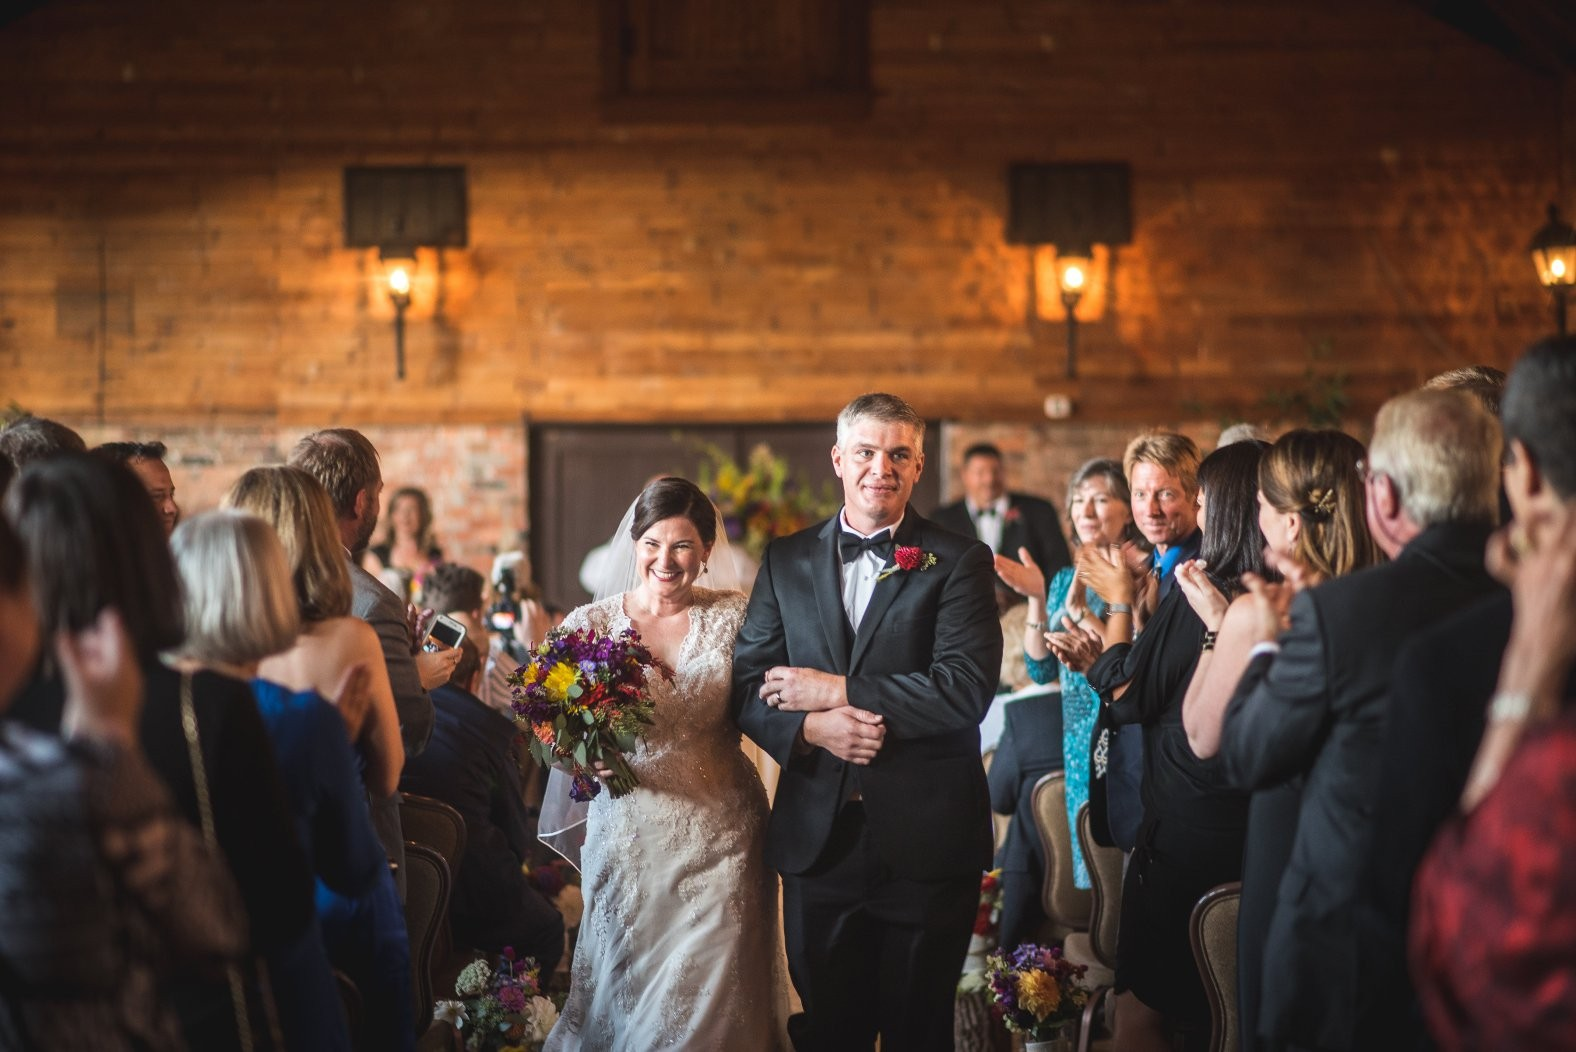 View More: http://frantz-photography.pass.us/kate-and-mac-watson